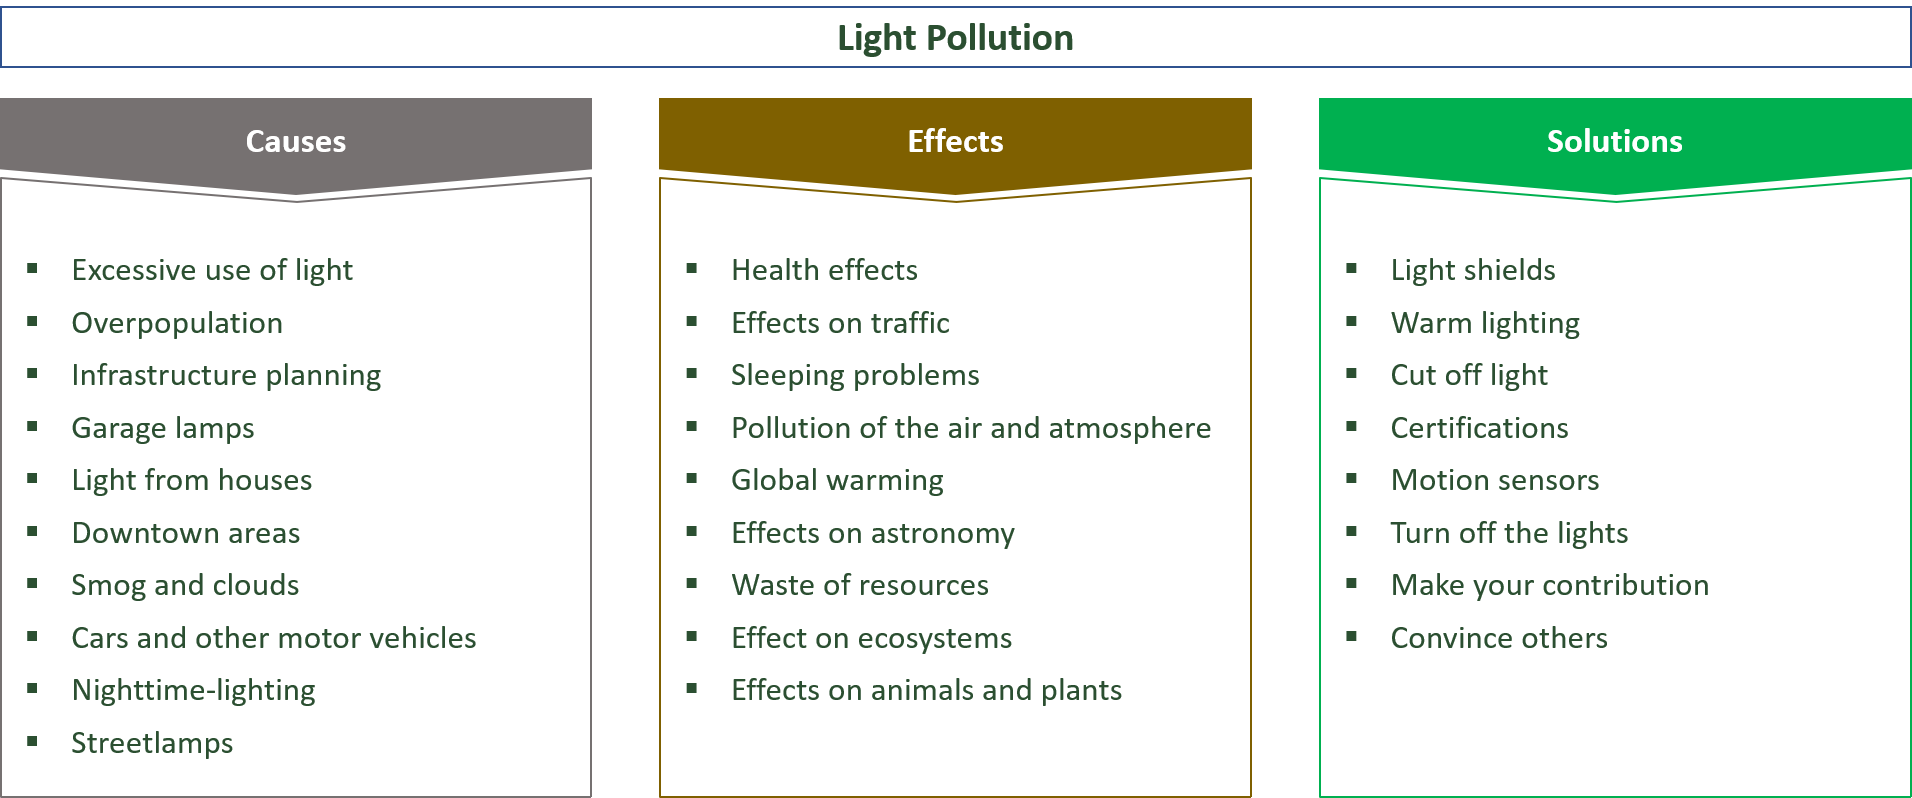 causes, effects and solutions for light pollution